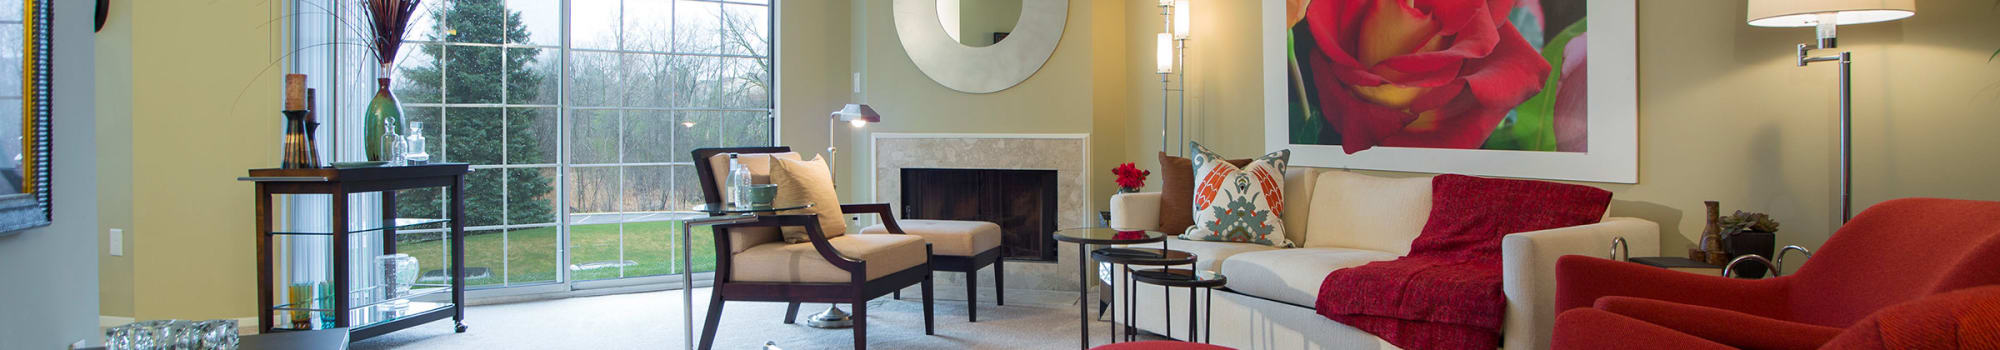 Suite stays at Aldingbrooke in West Bloomfield, Michigan